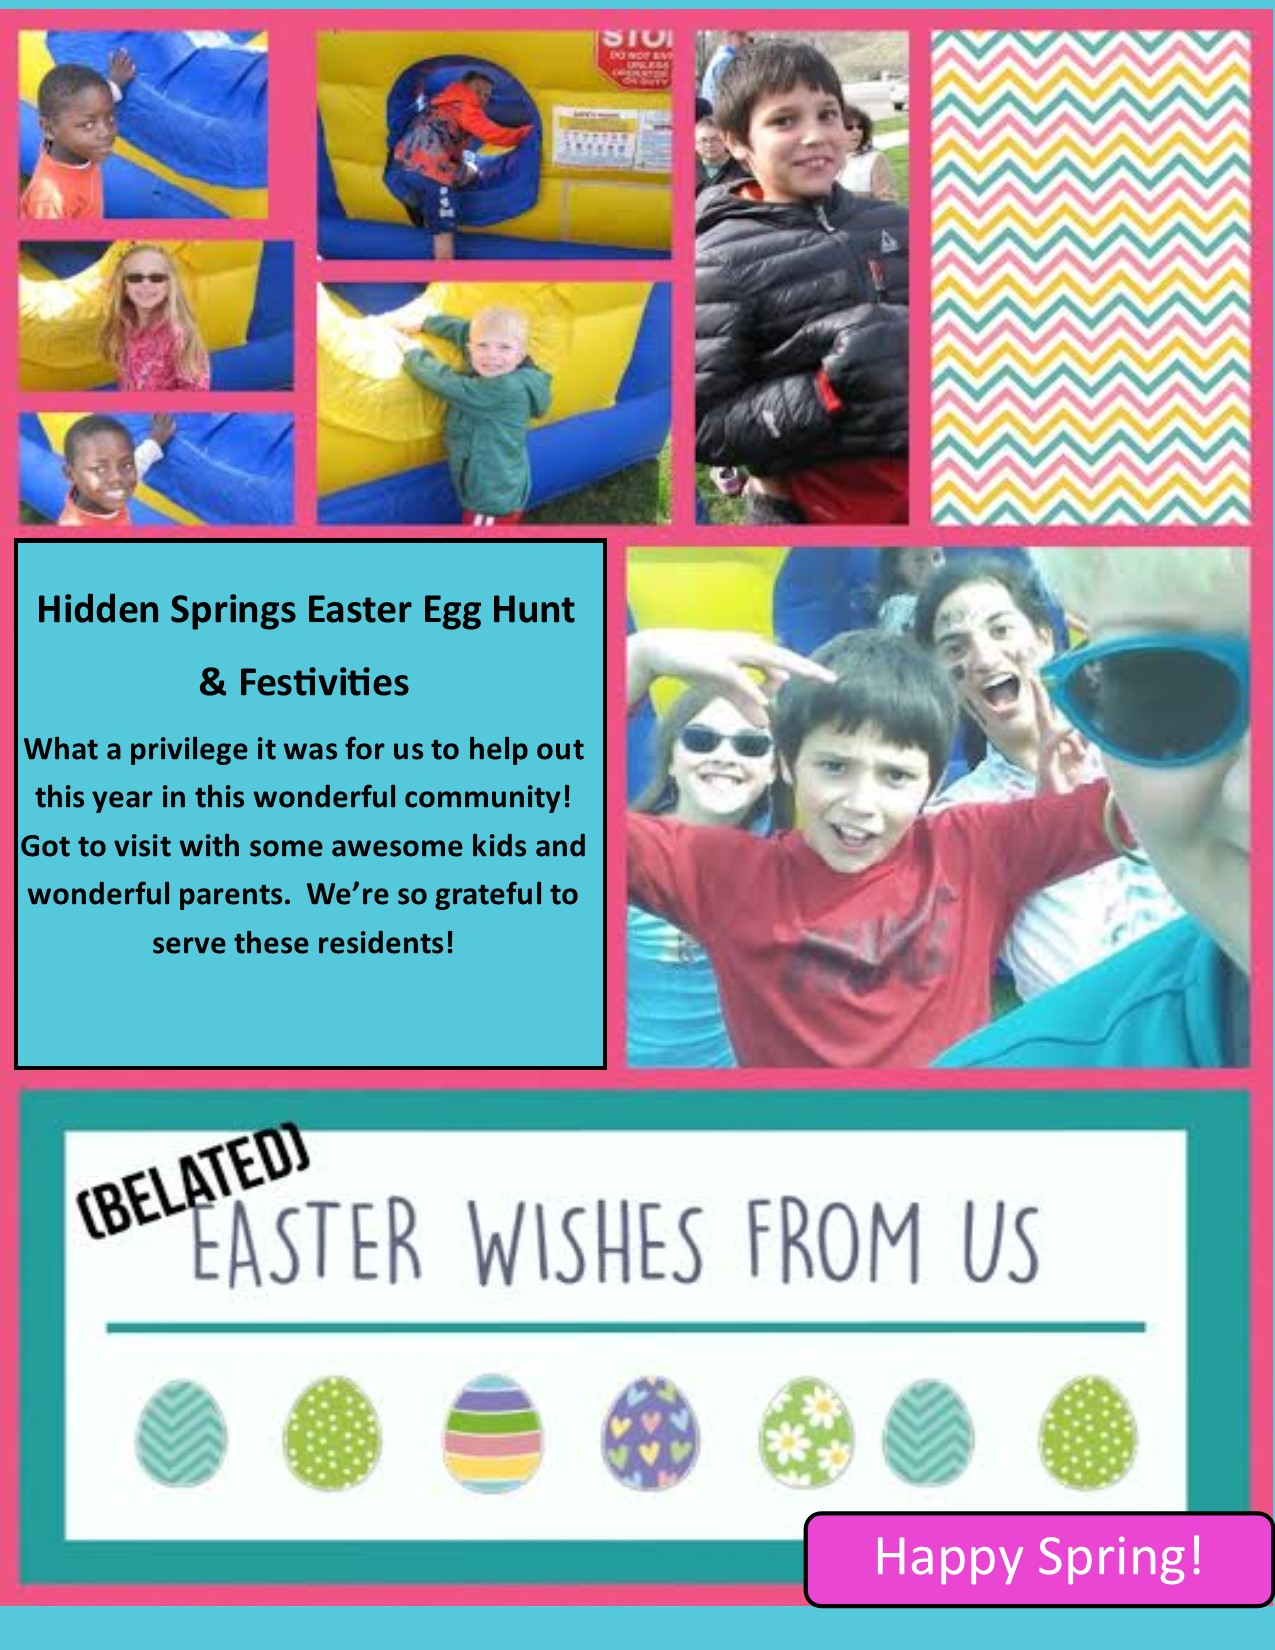 Easter in Hidden Springs!